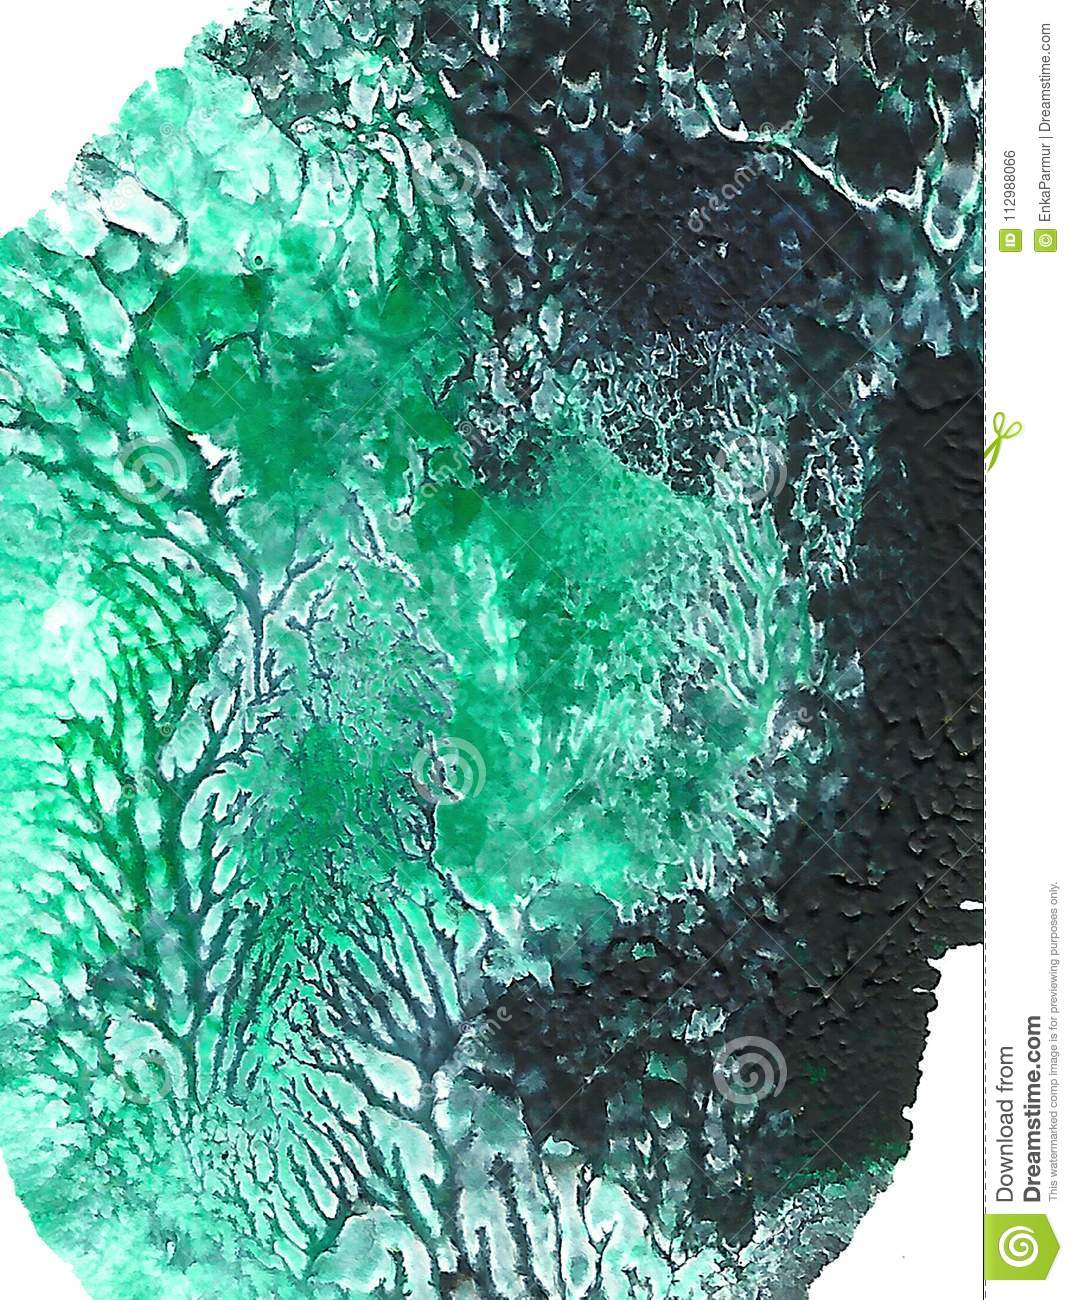 Abstract Acrylic Painted Background Turquoise Black Green Mixed Textured Vibrant Color Grunge Template For